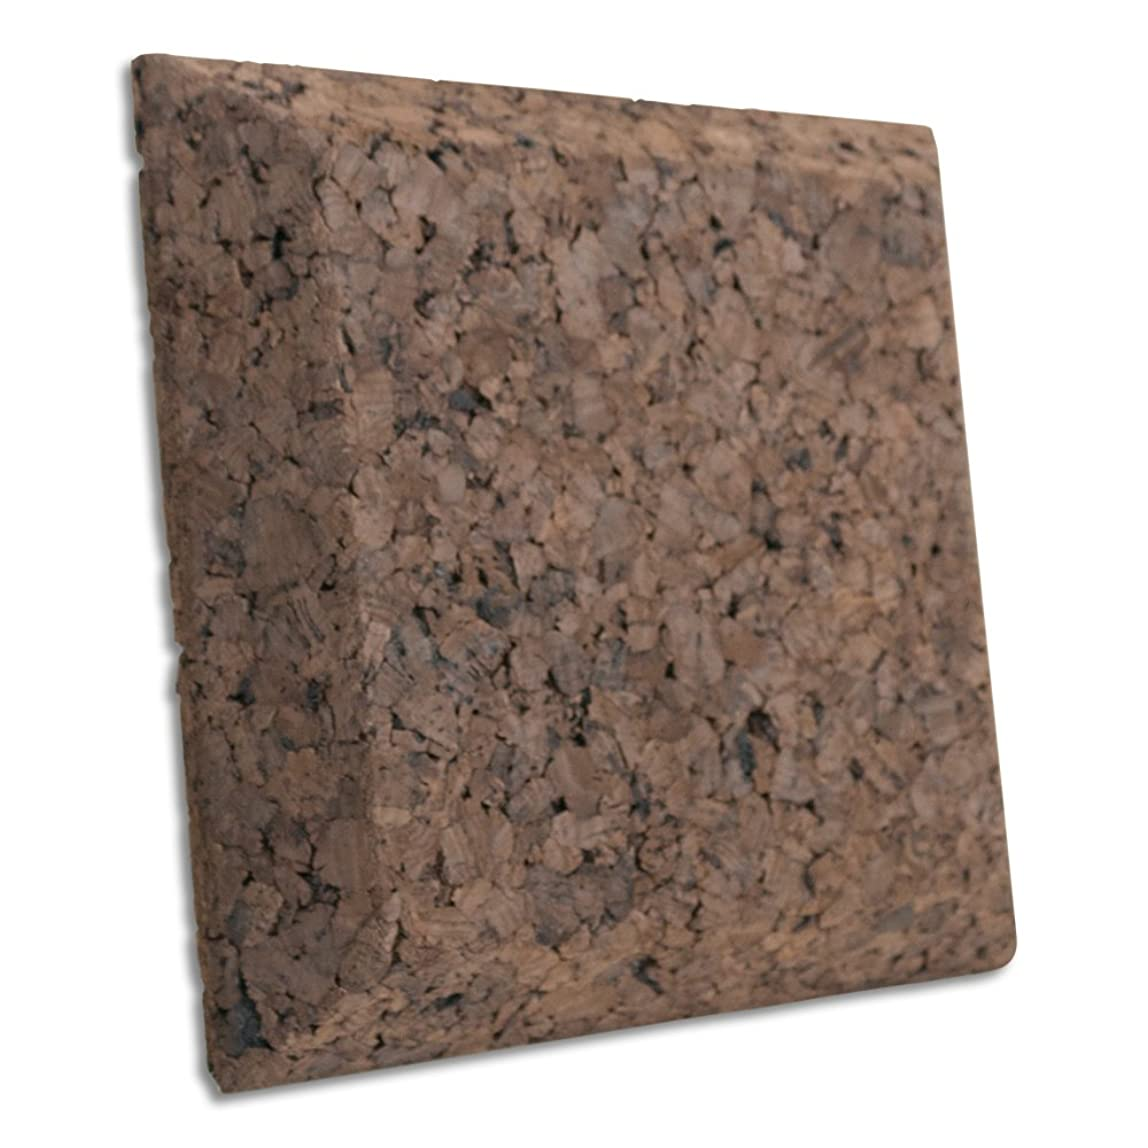 JOCAVI ECOiso QuadCork QCK004 Sound Absorbing & Soundproofing Tiles, Natural Dark Brown Cork, Professional Noise Deadening and Anti-Vibration Insulation, 9.8